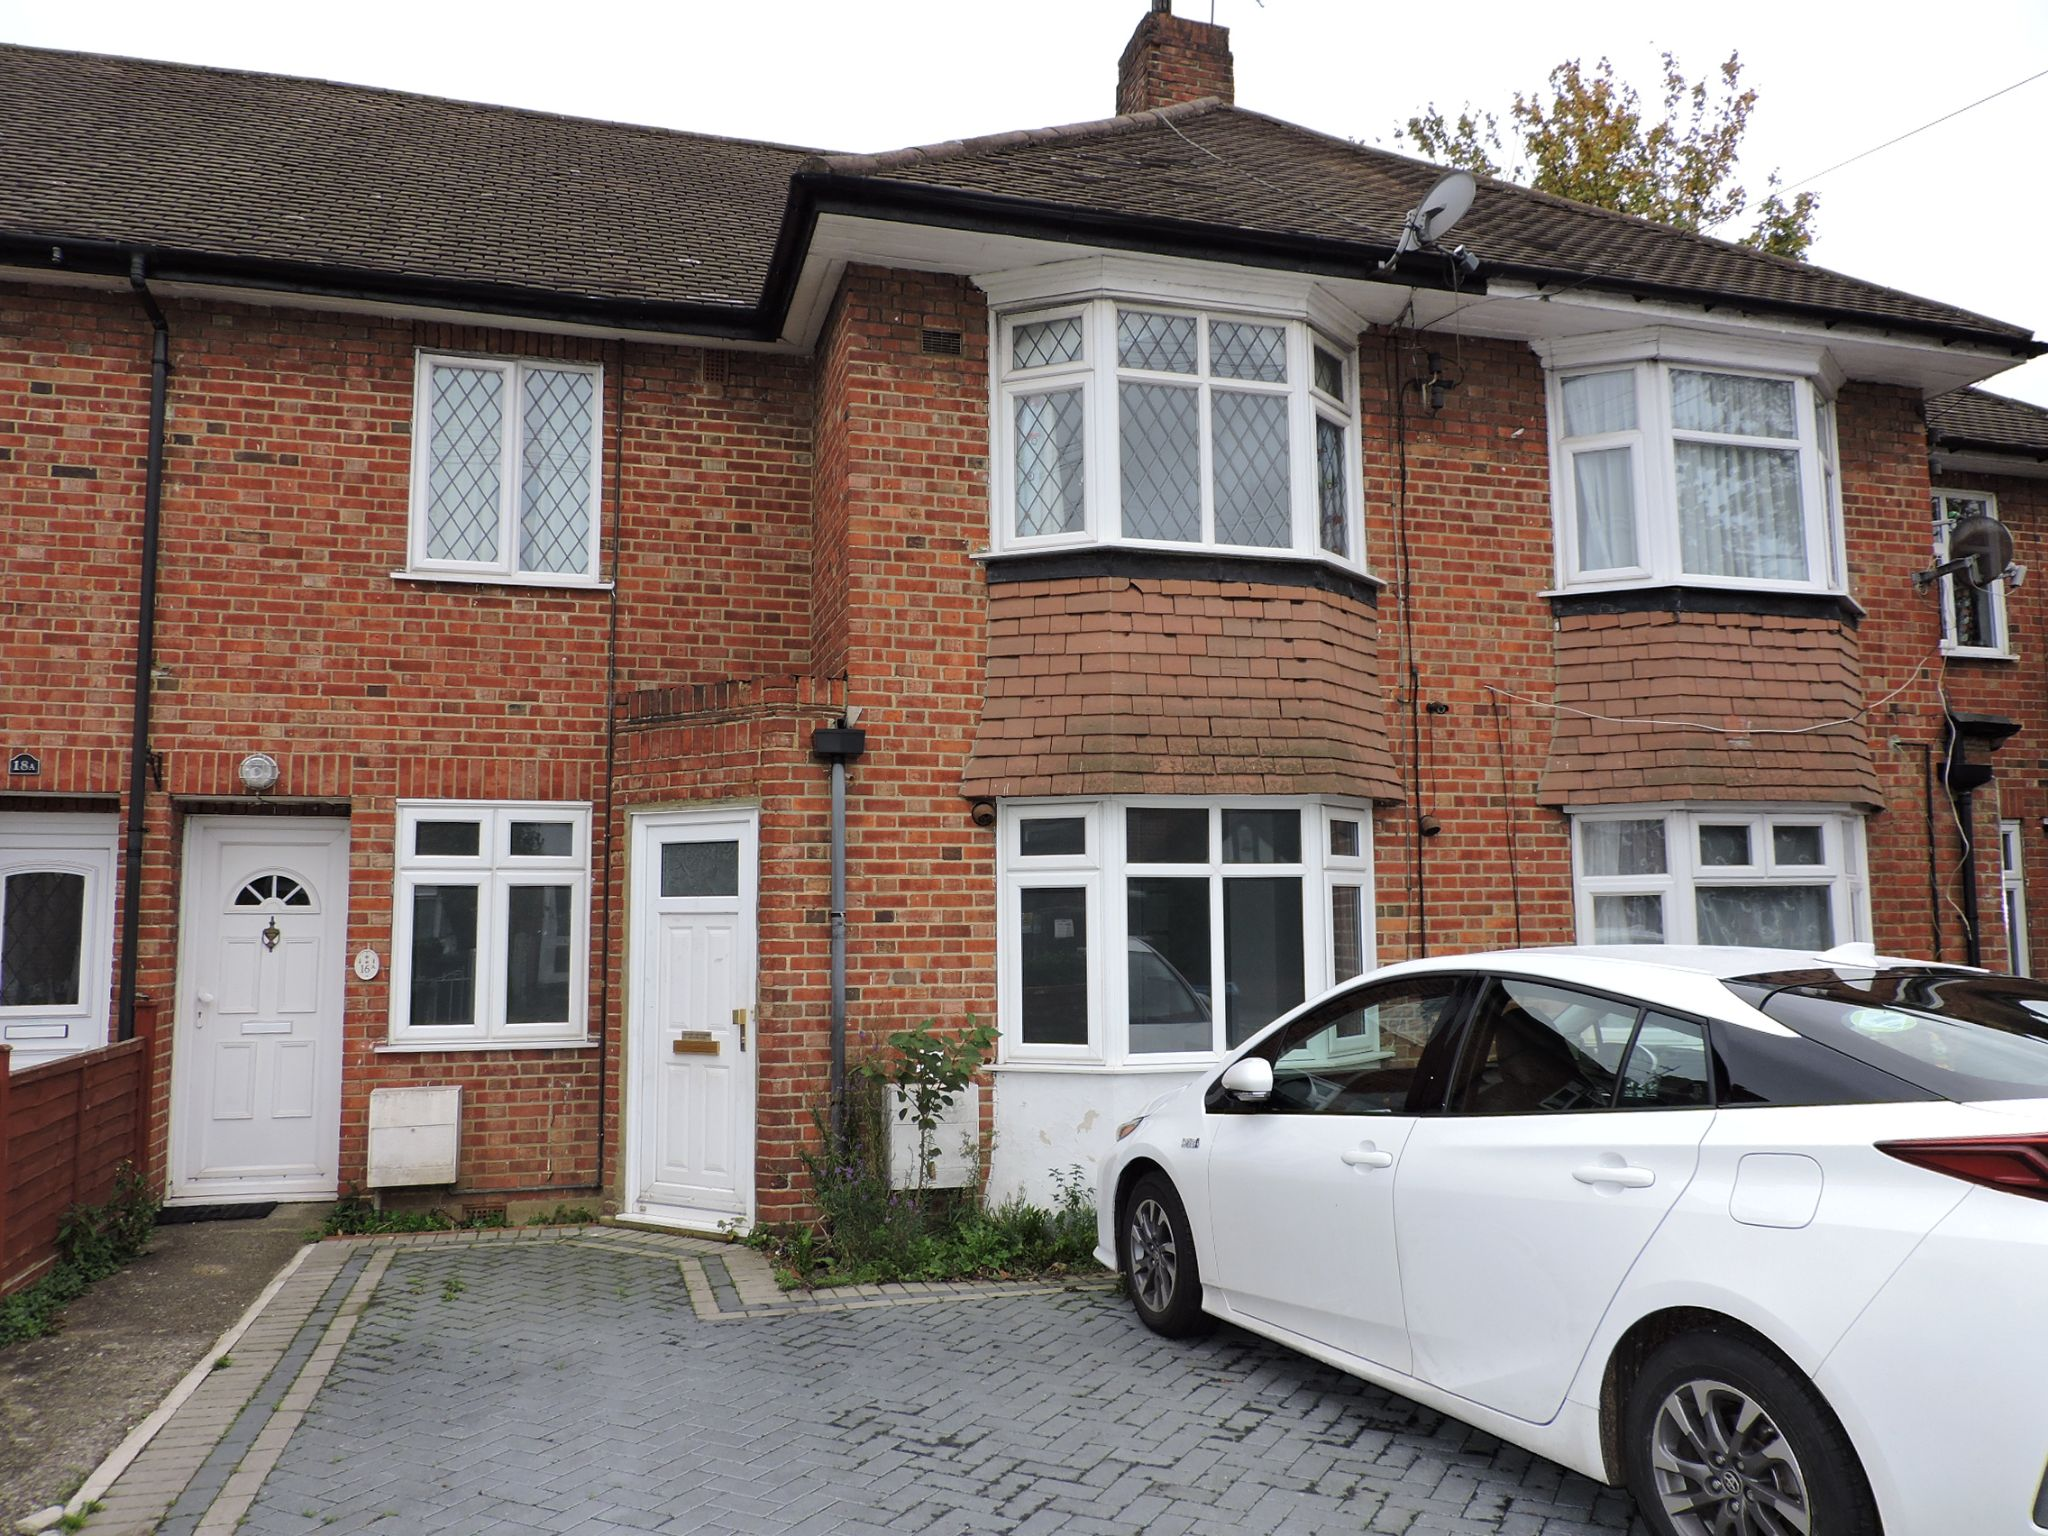 2 bedroom ground floor maisonette flat/apartment Let Agreed in New Malden - Photograph 1